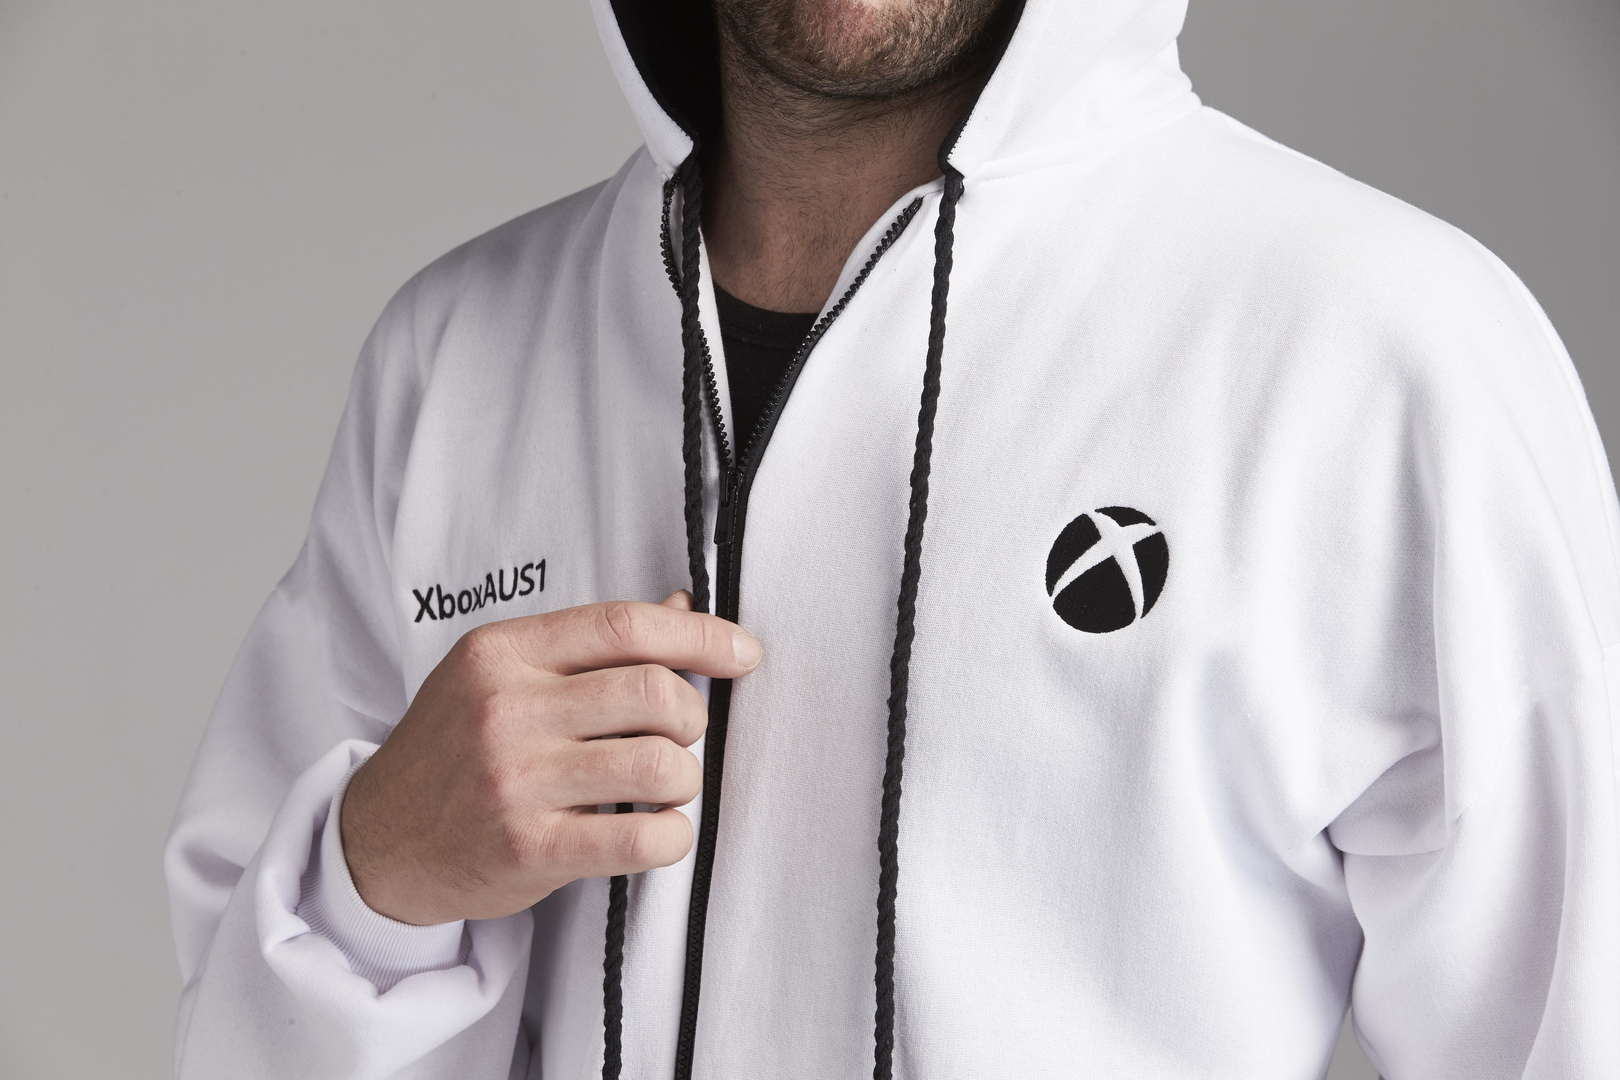 Microsoft Reveals Their Brand New Line Of Xbox Onesies